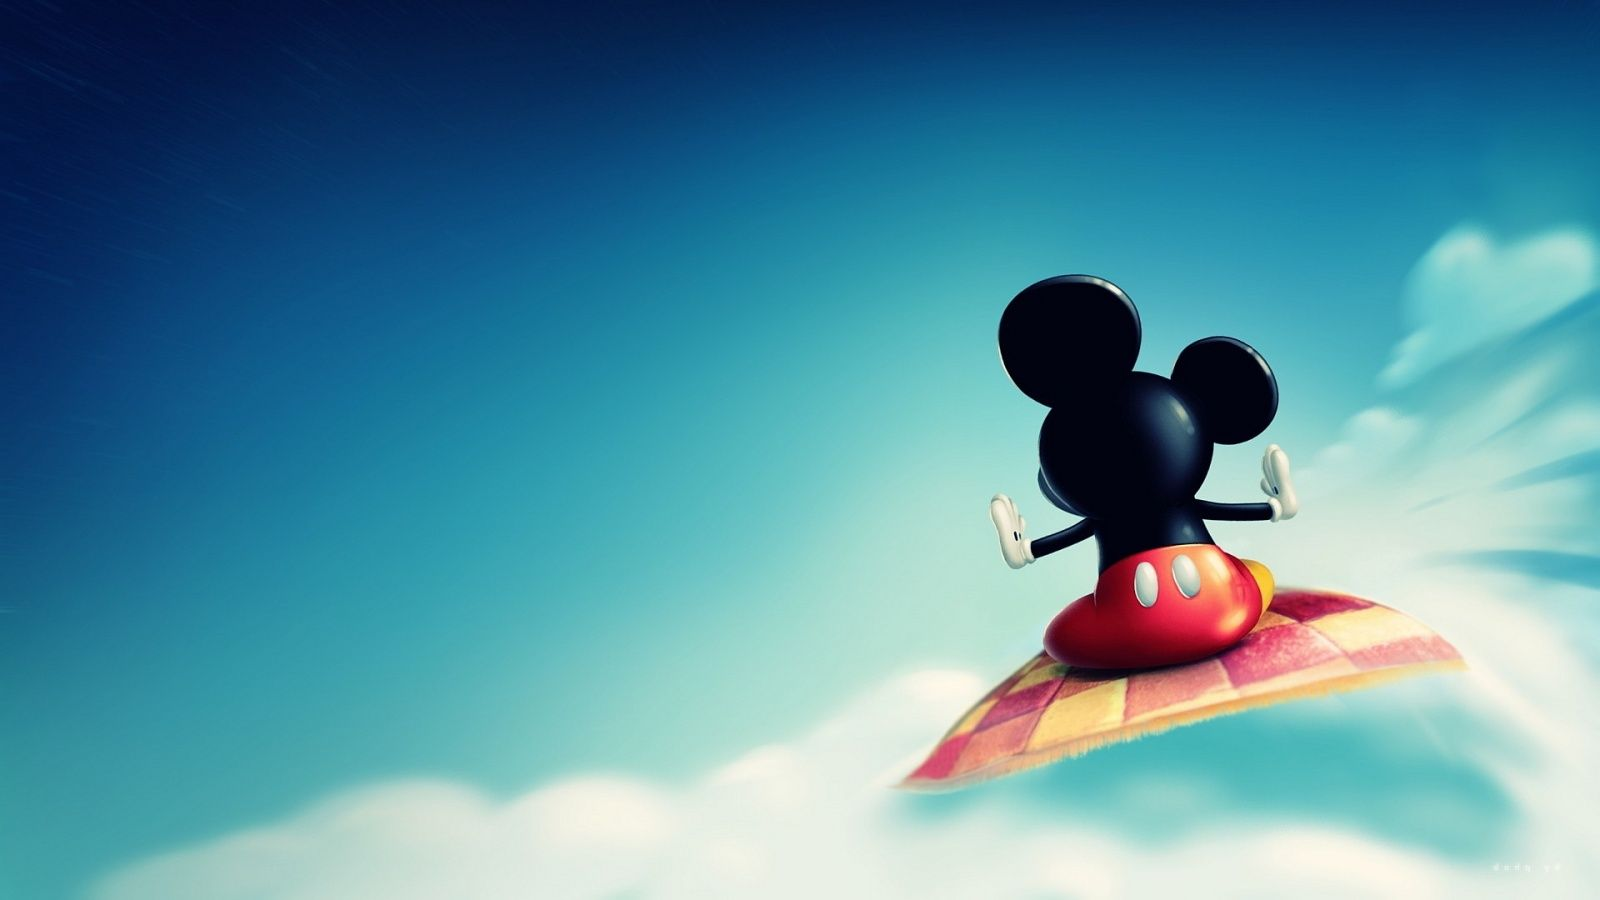 Mickey Mouse Wallpaper For Ipad All Wallpapers Pinterest